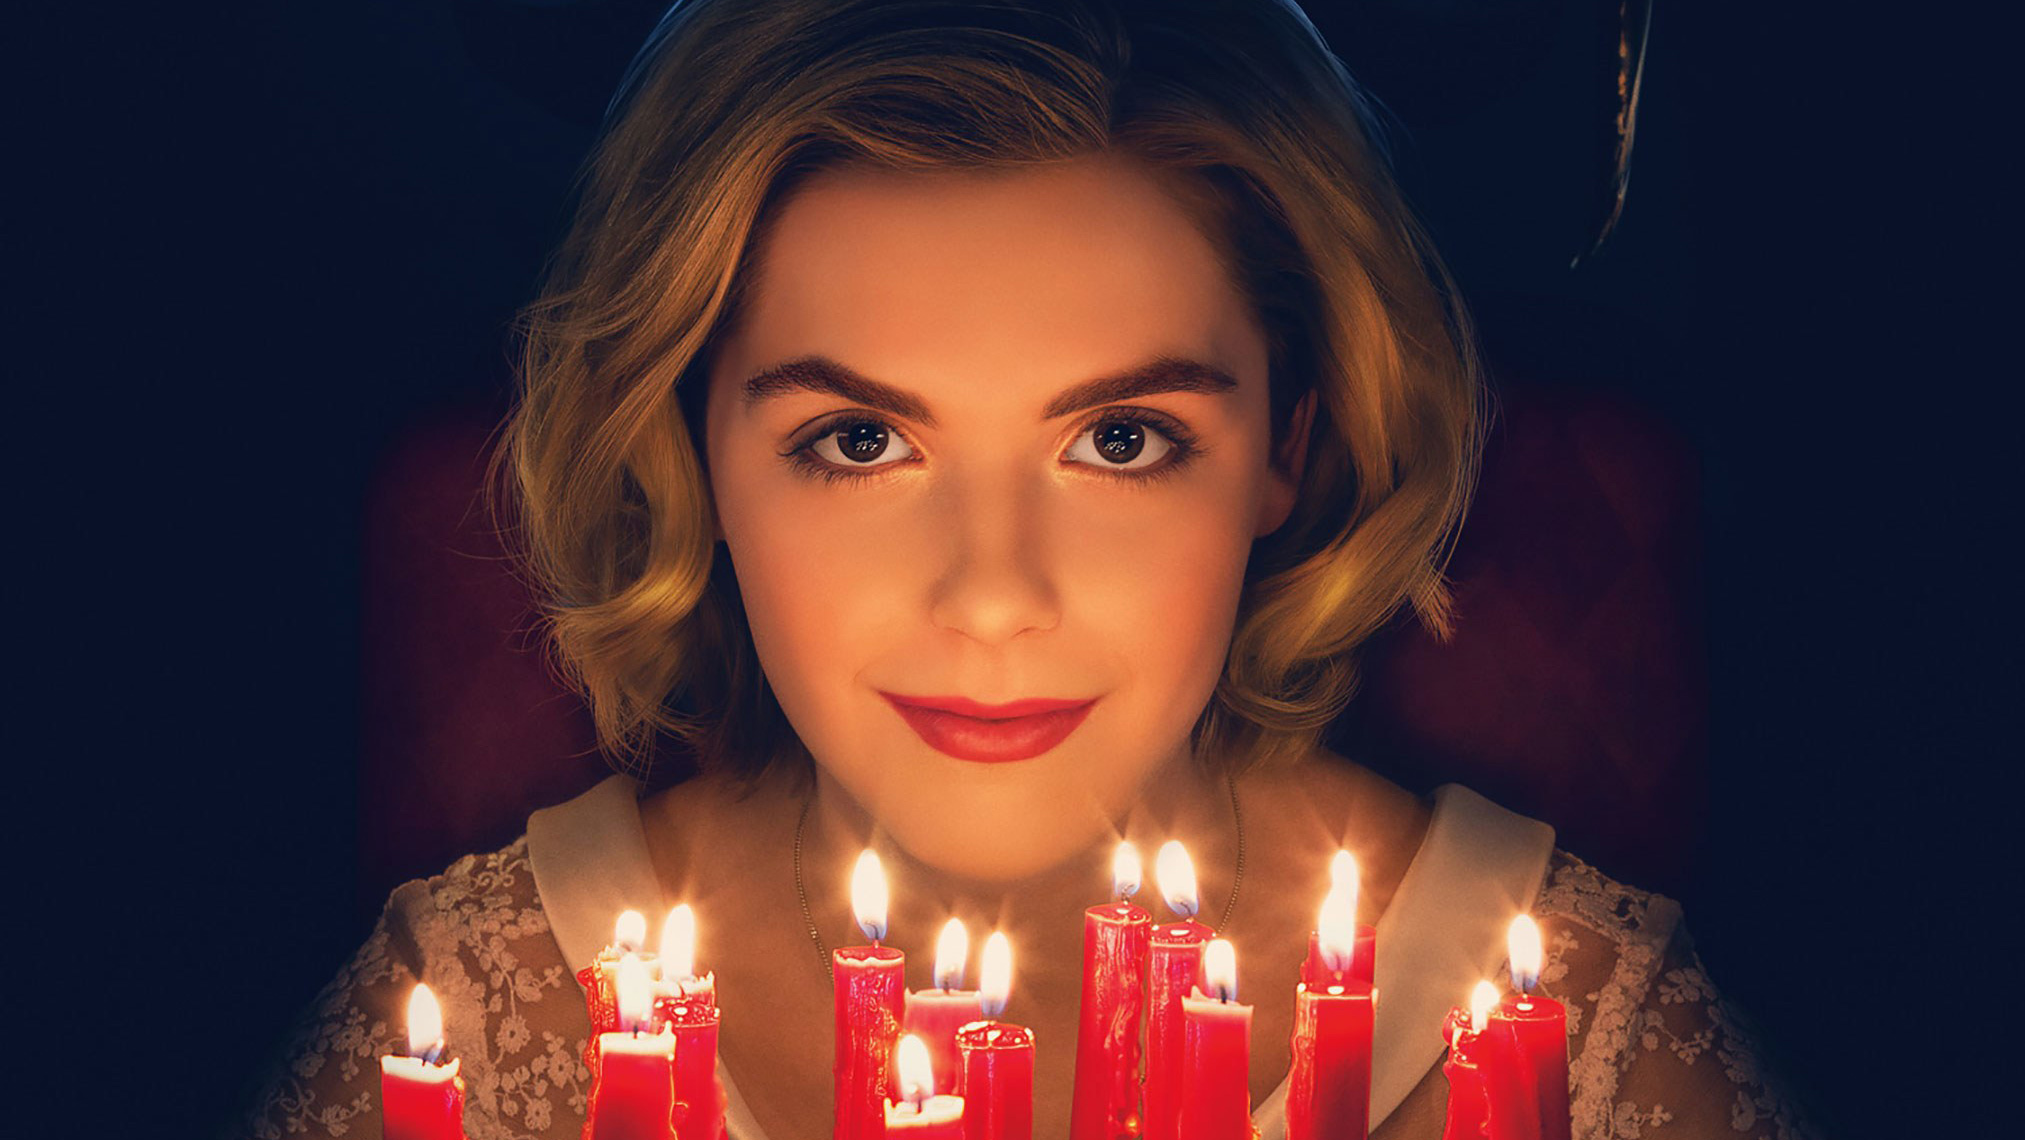 The Chilling Adventures Of Sabrina 2018 Poster Hd Tv Shows 4k